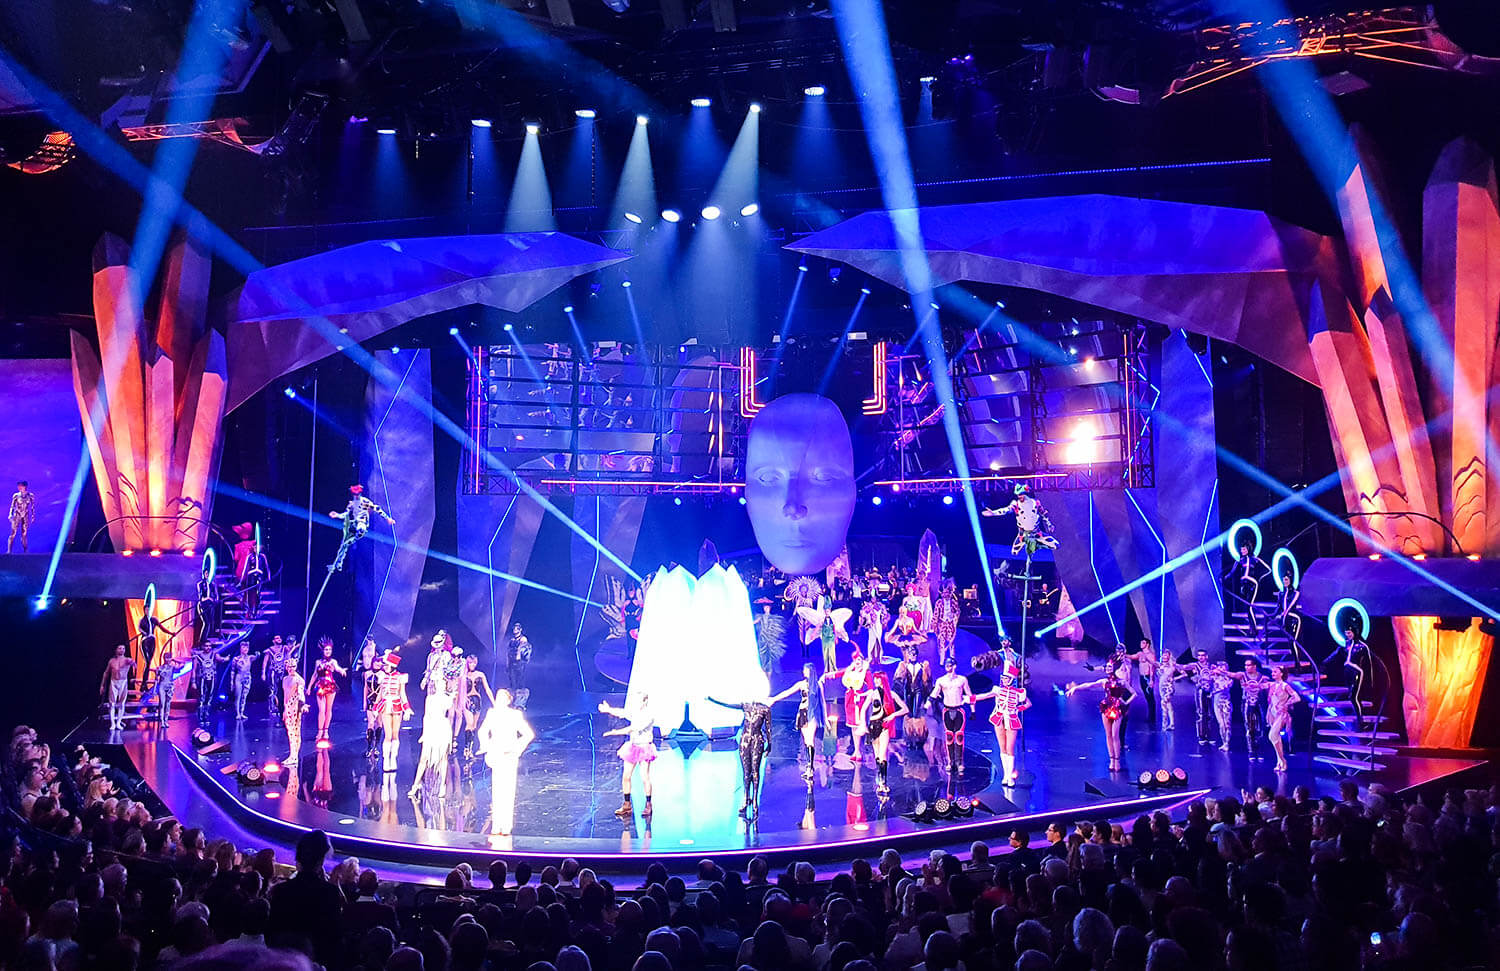 VIVID-Grand-Show-at-Friedrichstadt-Palast-Berlin-Kationette-Lifestyleblogger-Germany